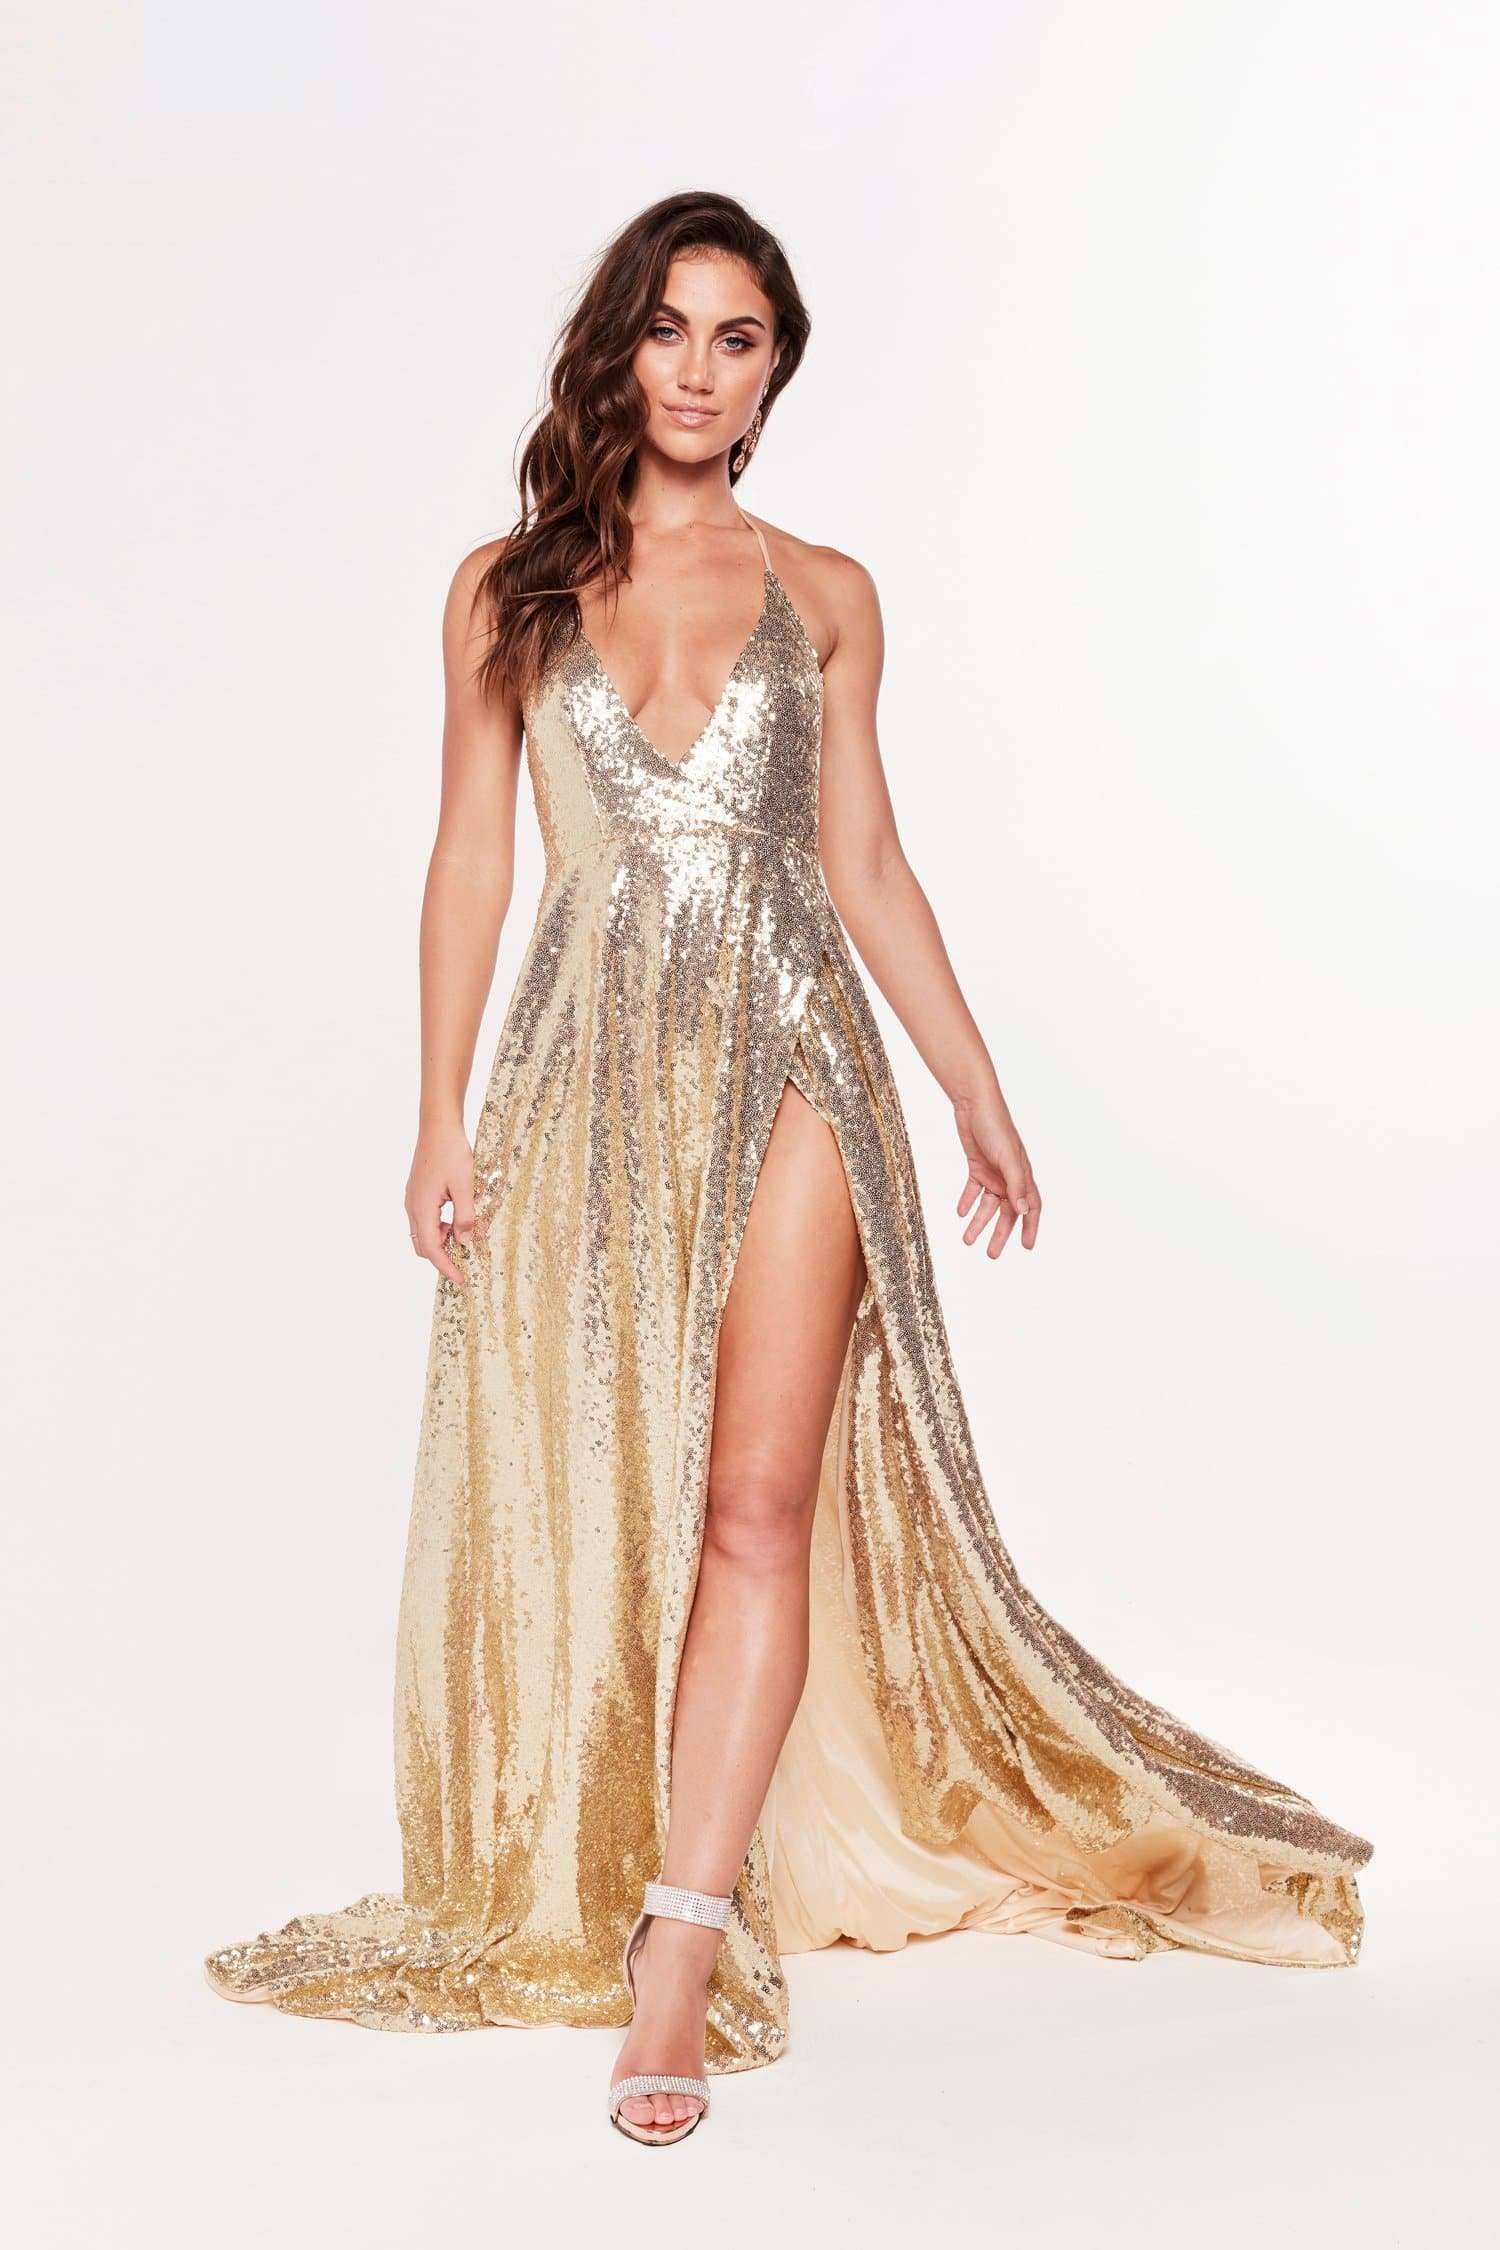 A&N Camilla - Champagne Sequin Gown with Plunge Neck and Side Slit ...